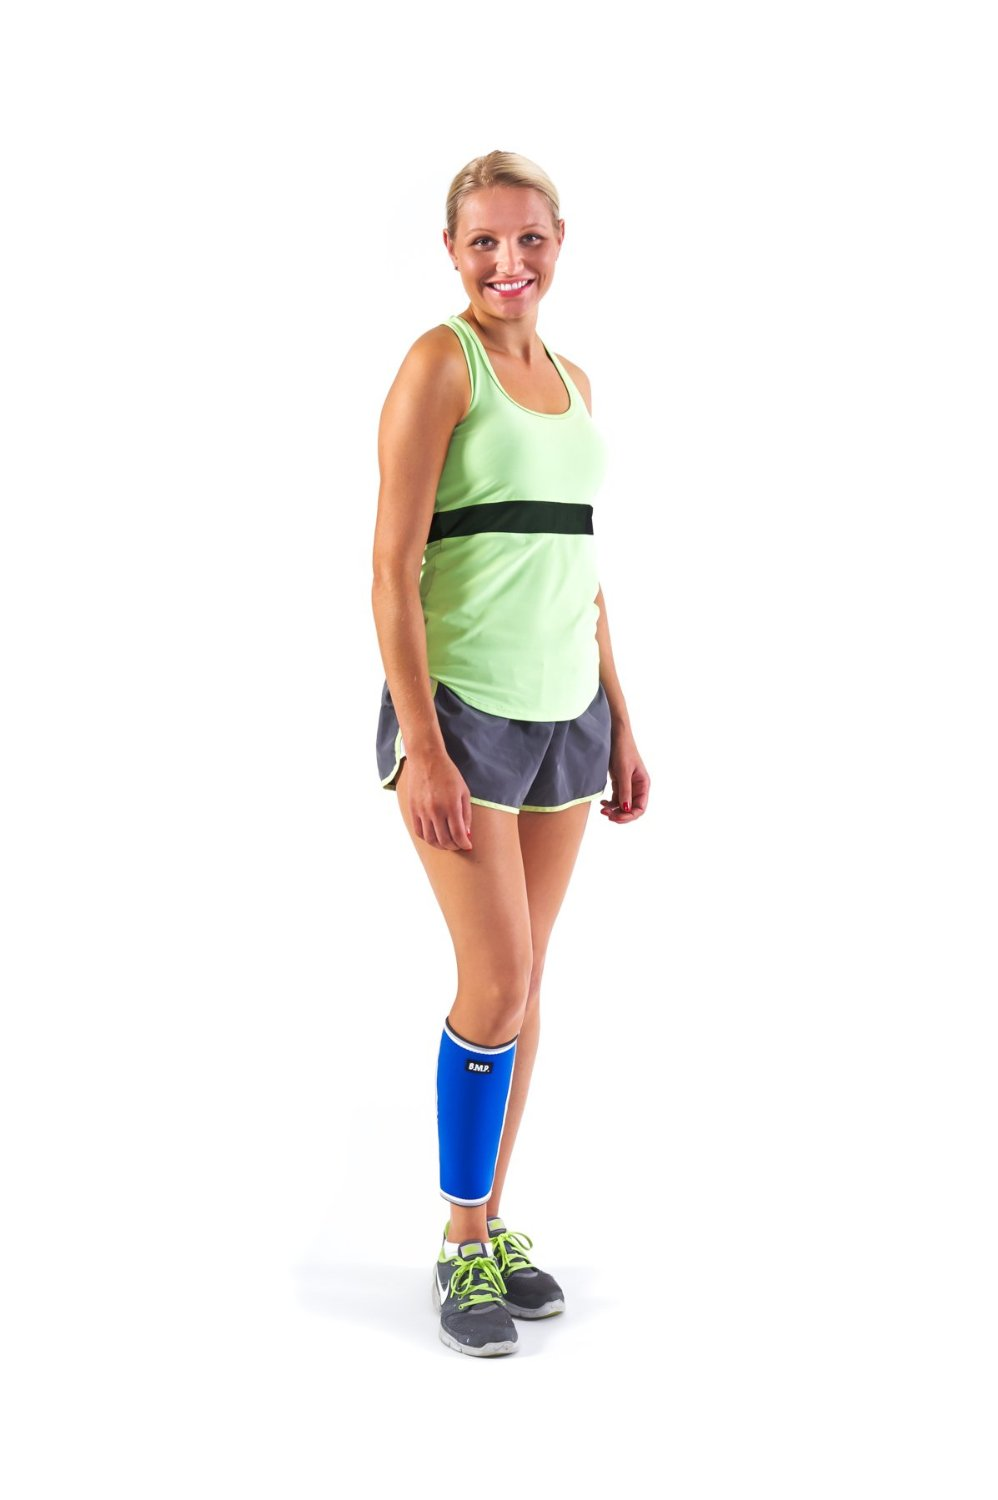 Battle Ropes For Sale >> Calf Compression Sleeve - Therapeutic Warming Sensation ...